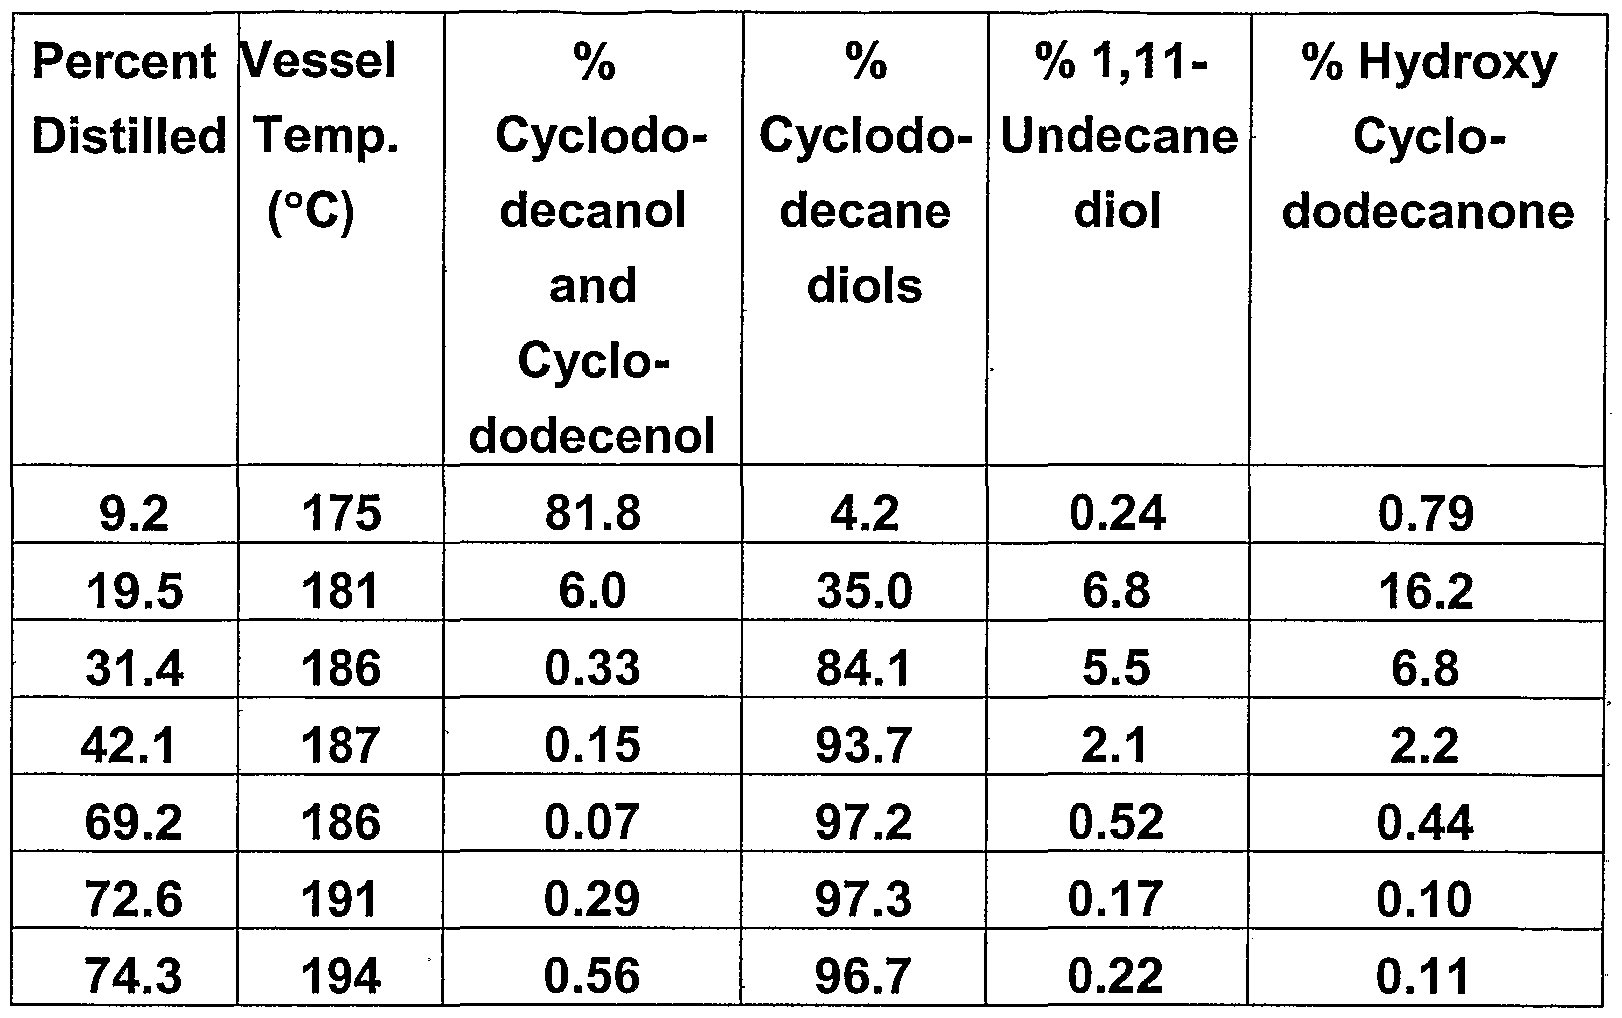 oxidation of cyclododecanol to cyclododecanone essay Admin on the twenty-first century, fast nutrient had replaces the topographic point of traditional eating house fast nutrient besides have become a topographic point to rest, treatment about place work, and meet with their friend towards pupils among in malaysia.